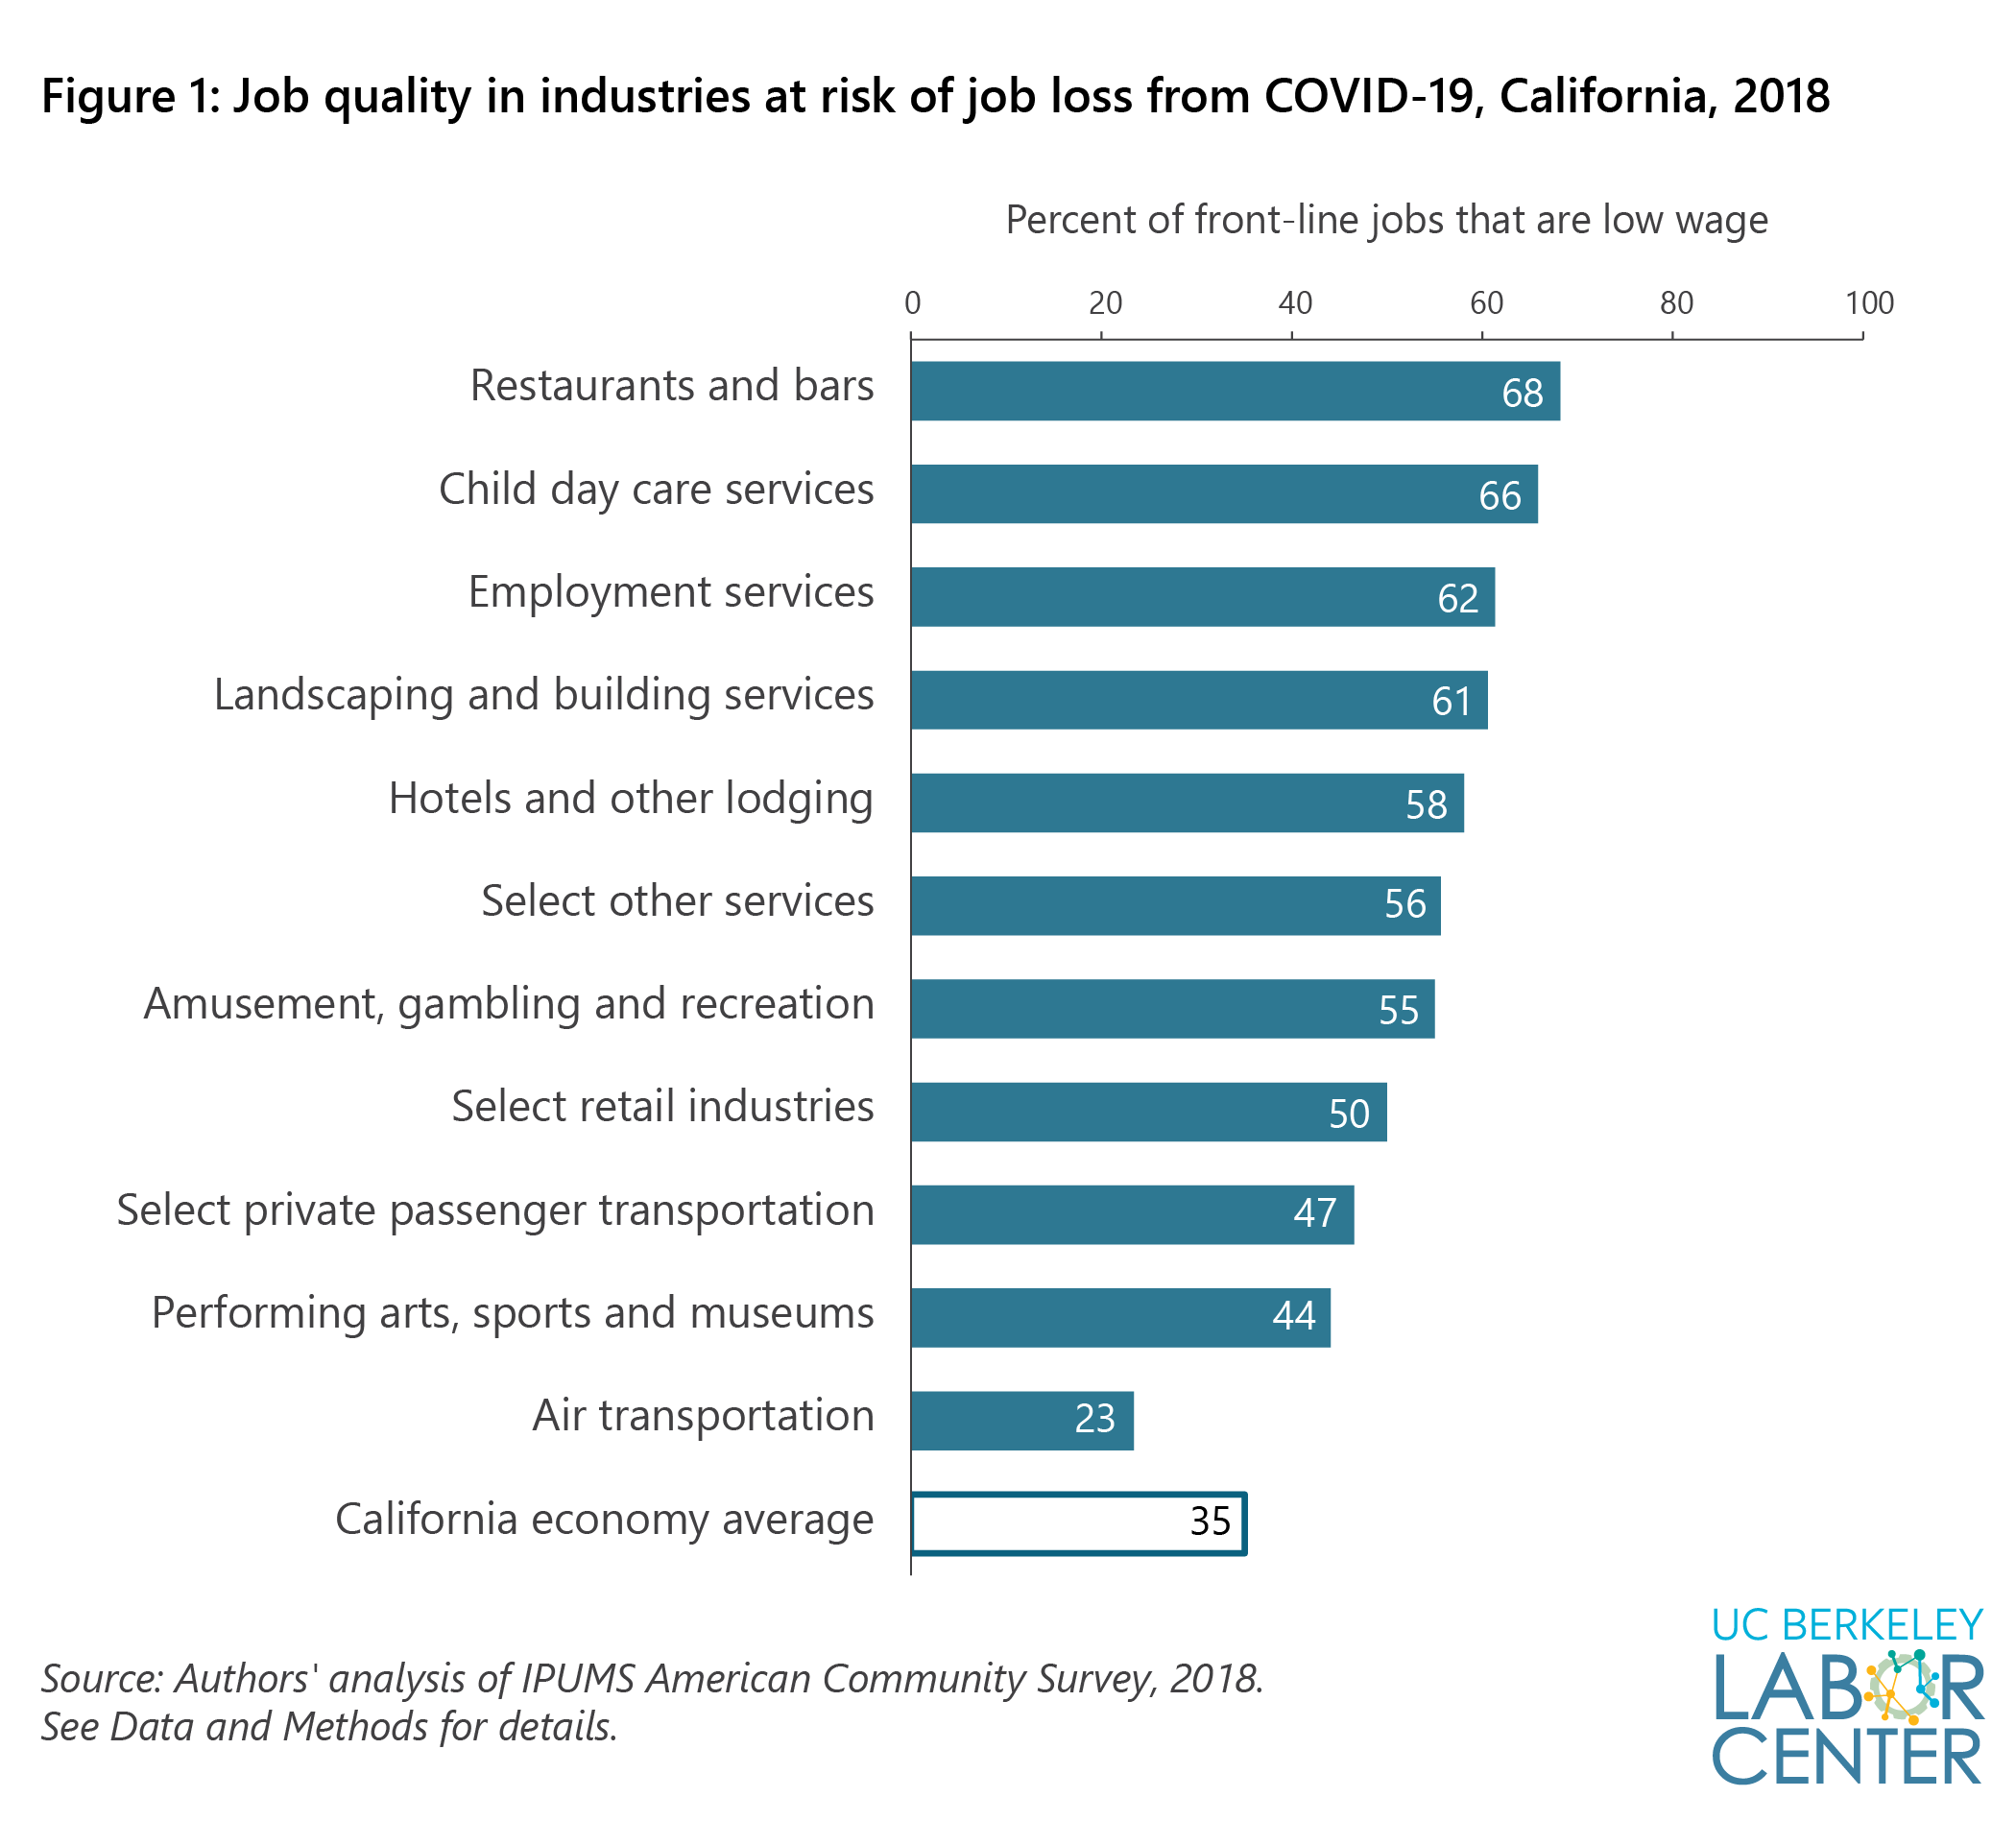 Industries At Direct Risk Of Job Loss From Covid 19 In California A Profile Of Front Line Job And Worker Characteristics Center For Labor Research And Education Uc Berkeley